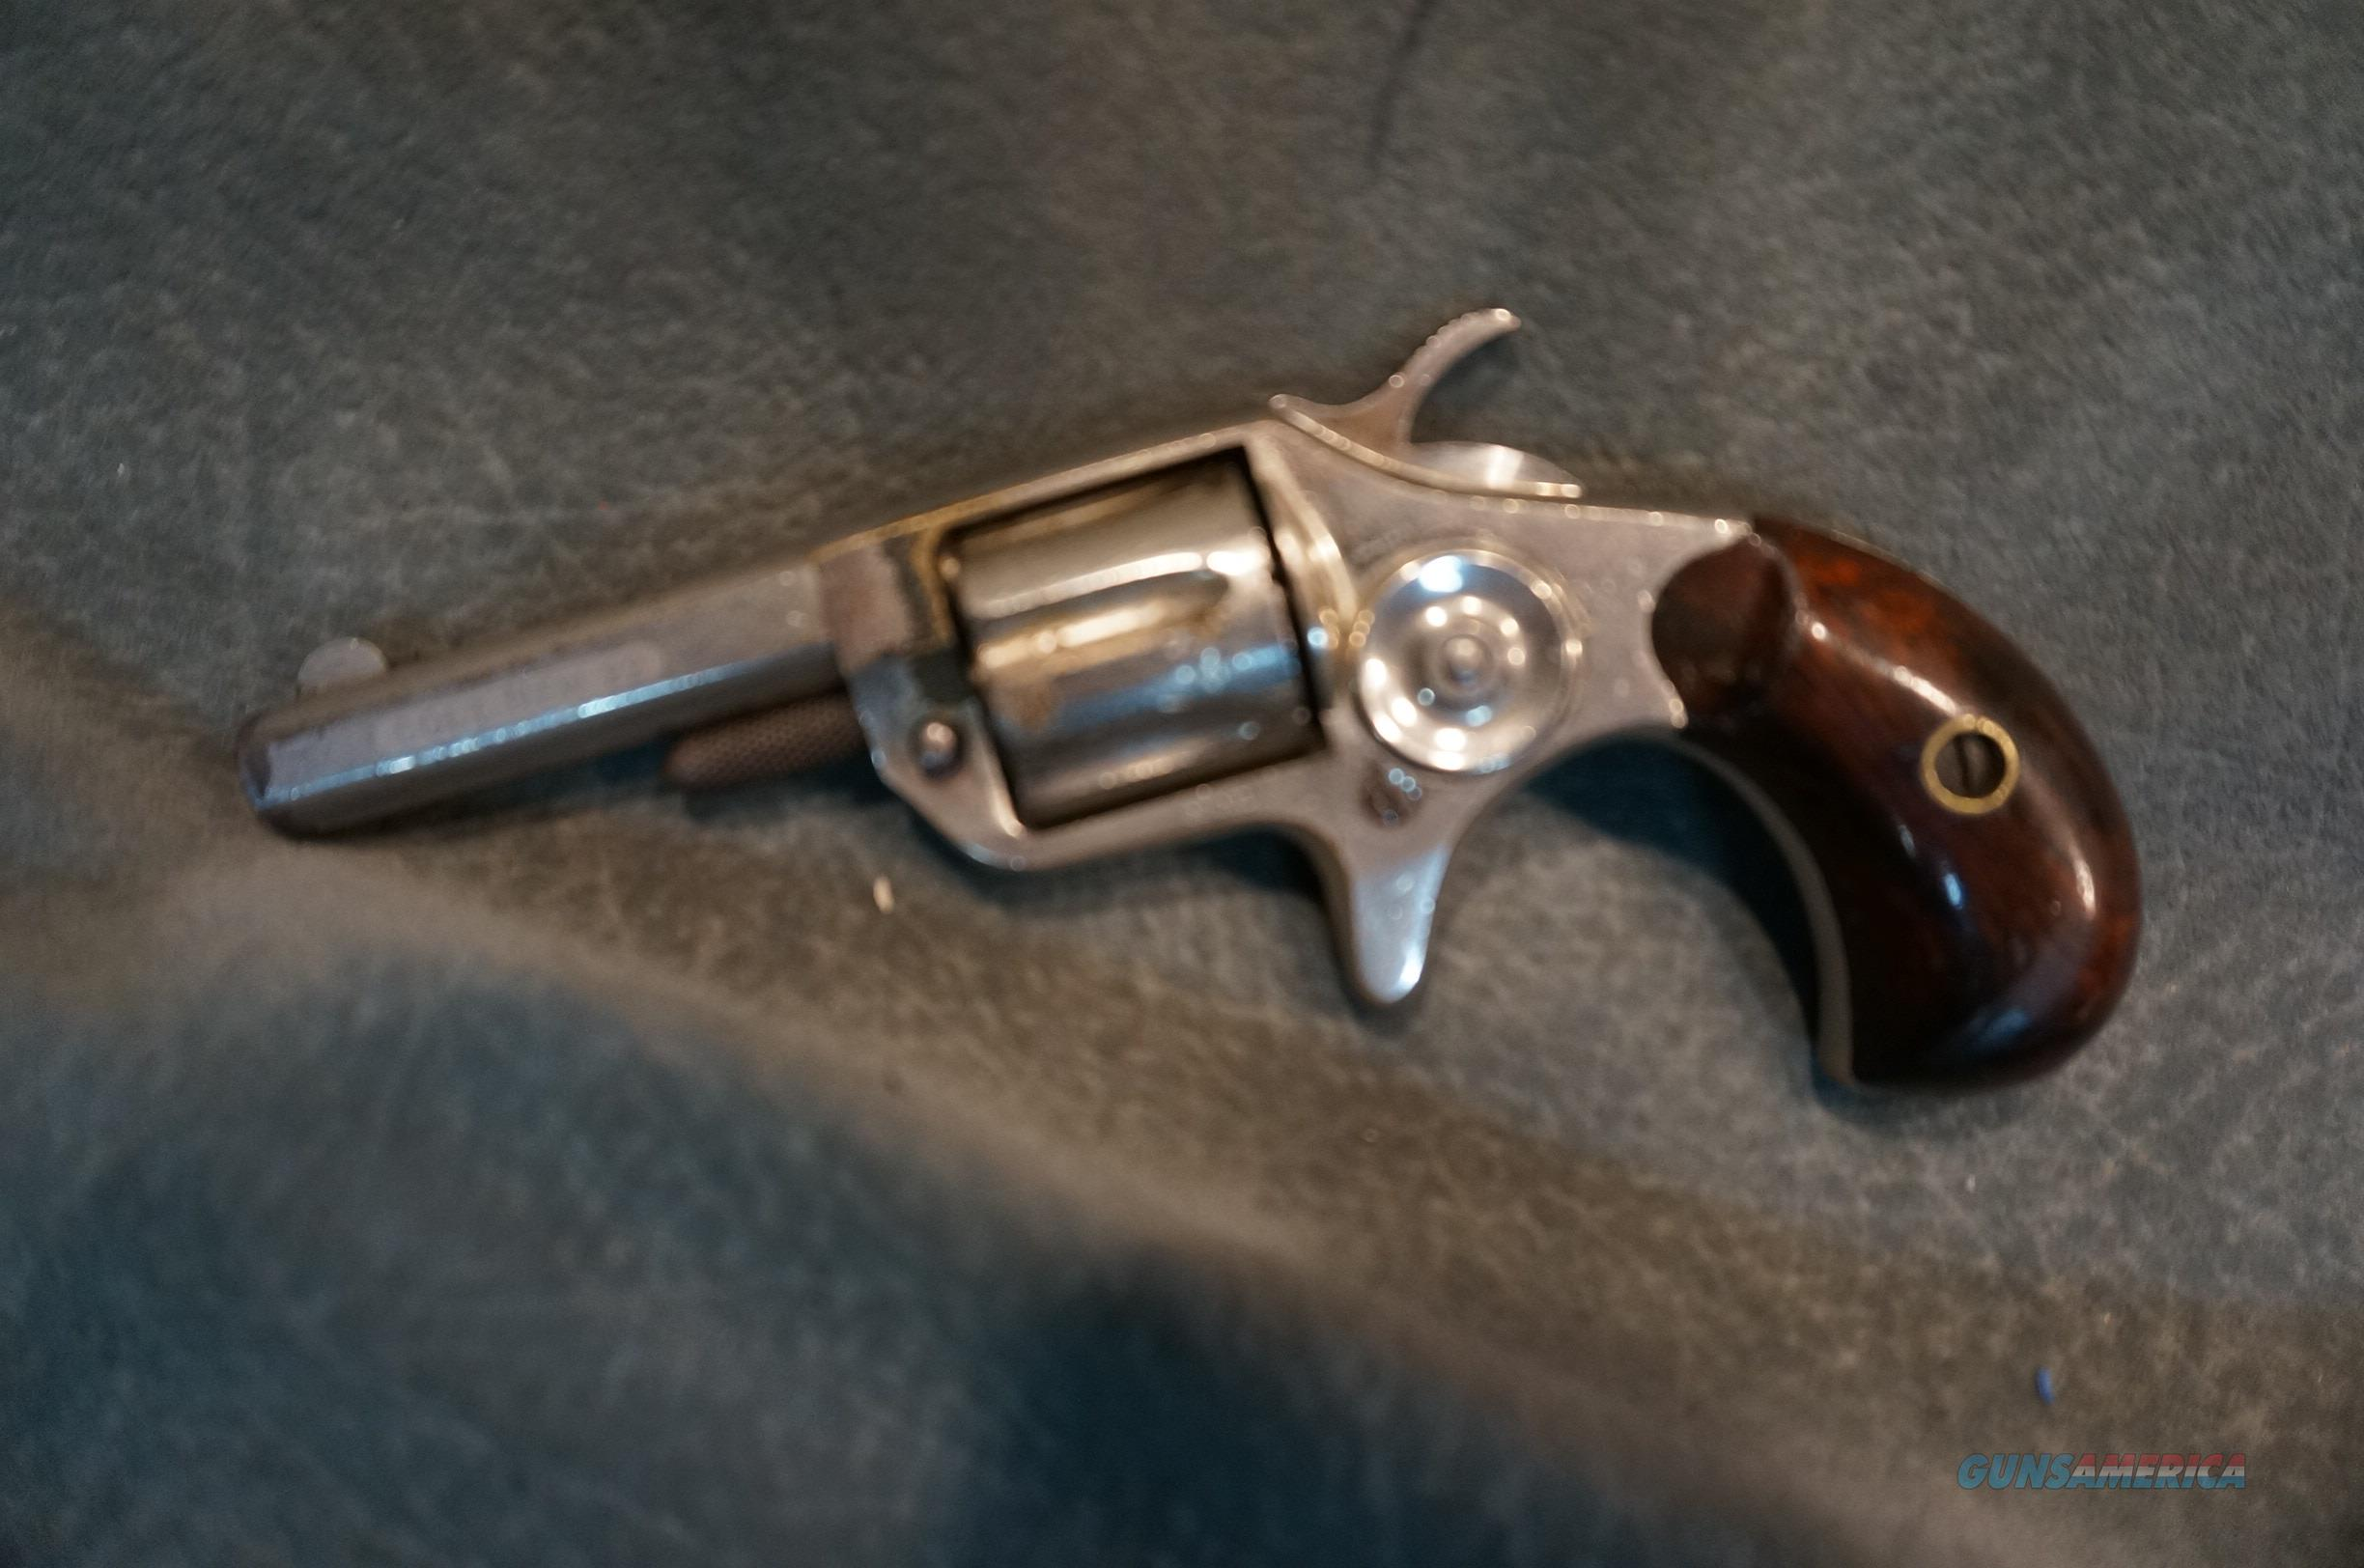 Antique New Line 22 2nd Model nickel etched barrel  Guns > Pistols > Colt Single Action Revolvers - Modern (22 Cal.)